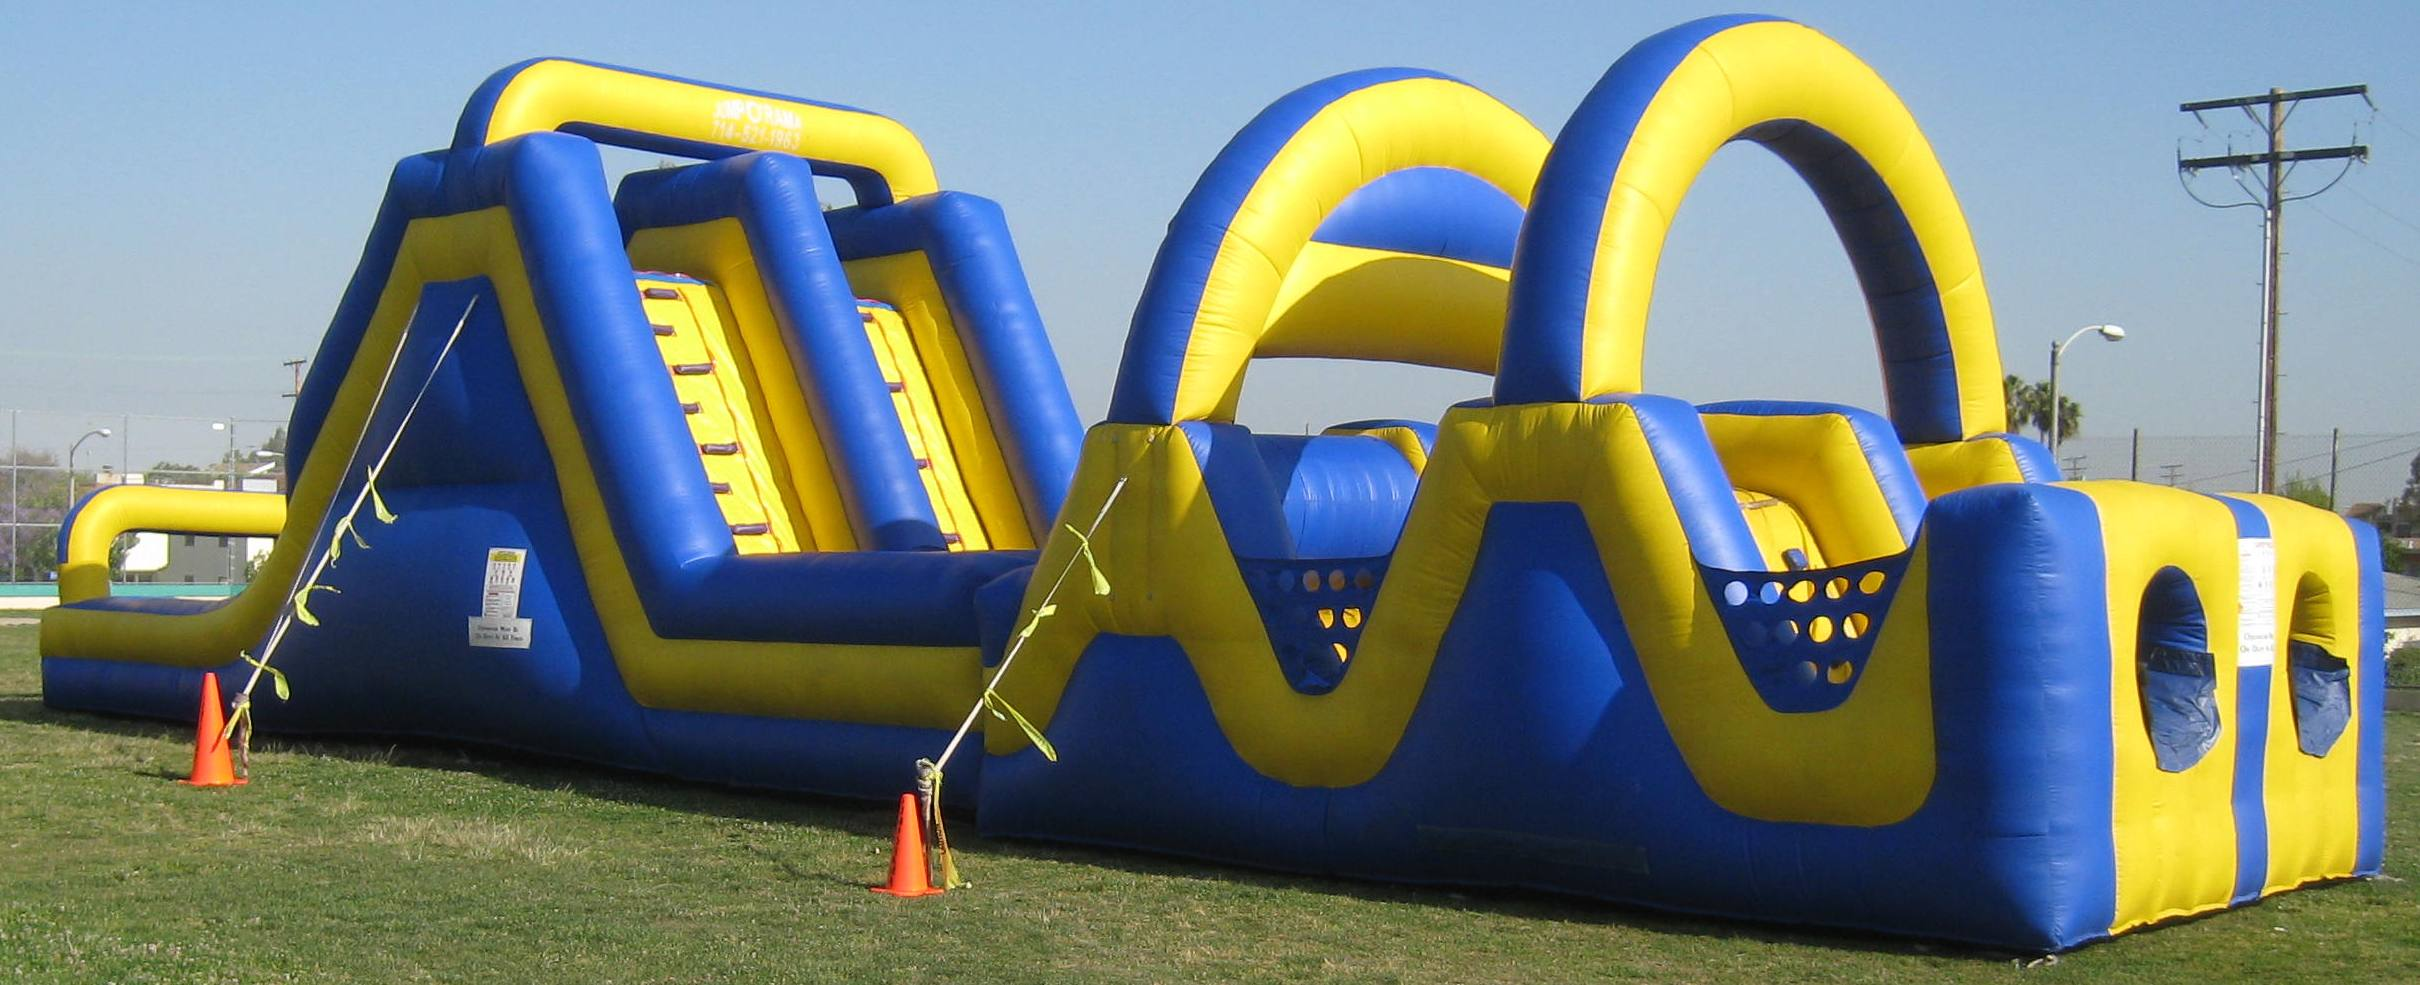 60 Ft Obstacle course from biloxi bounce house